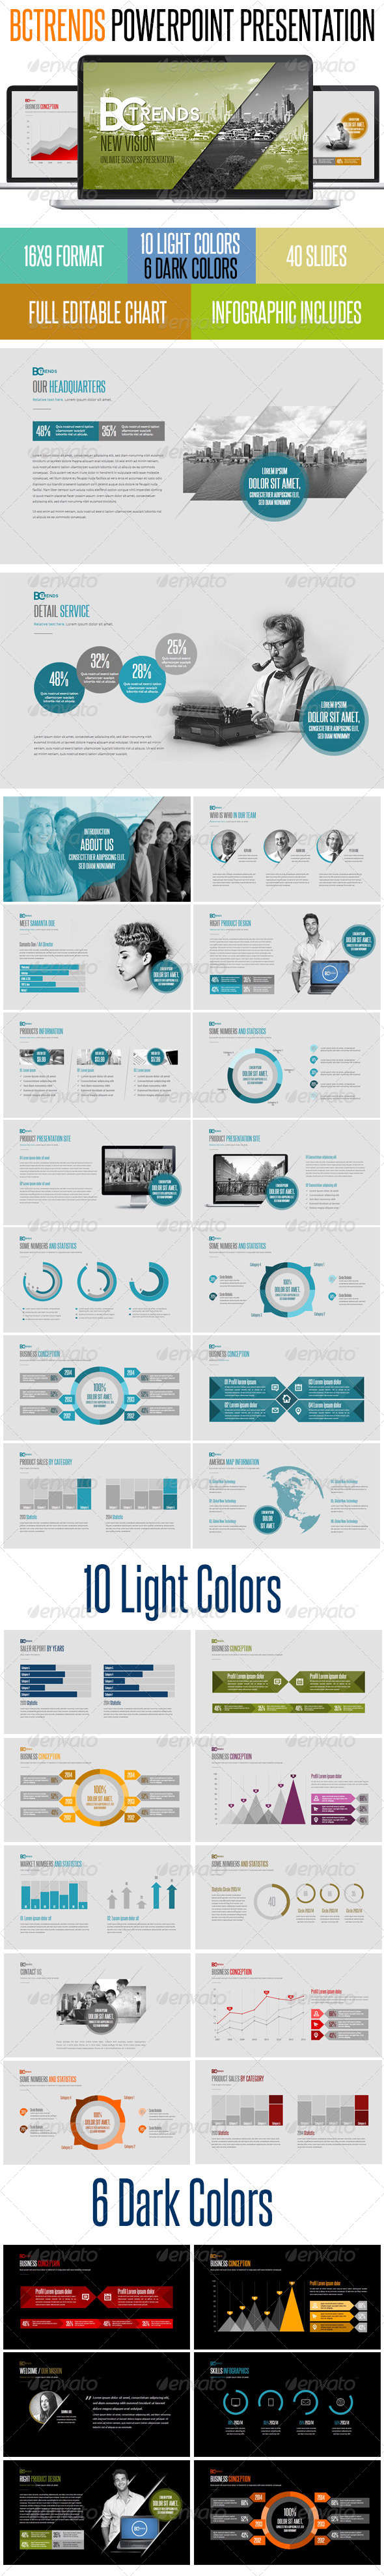 GraphicRiver Powerpoint Presentation BC Trends 8283382